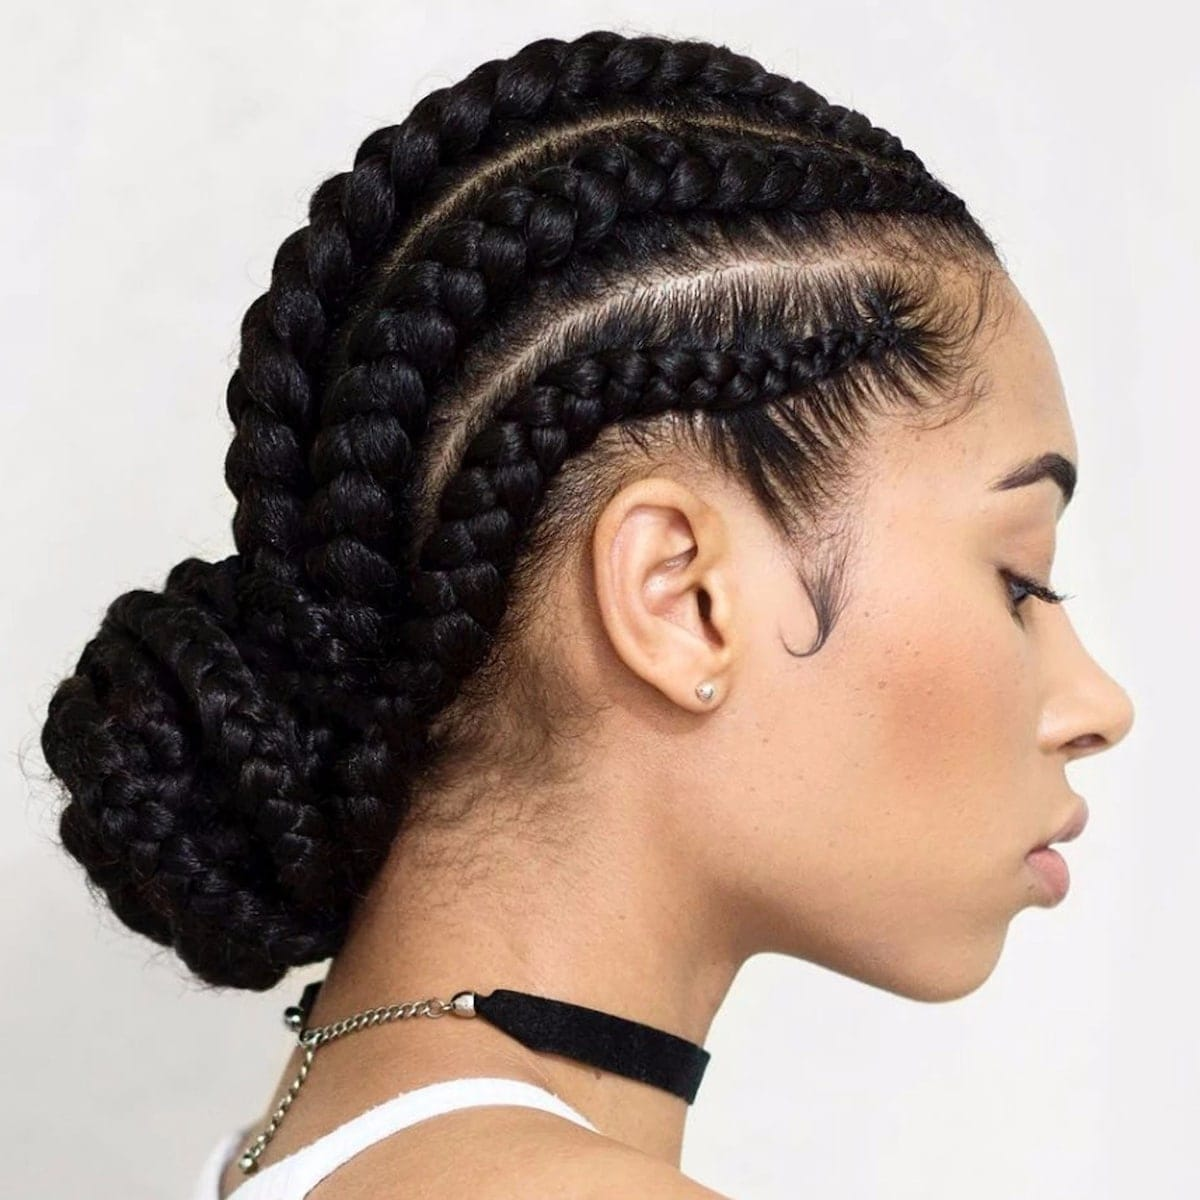 10 Different Ghana Braids Styles For Your Natural Hair Kuulpeeps Ghana Campus News And Lifestyle Site By Students